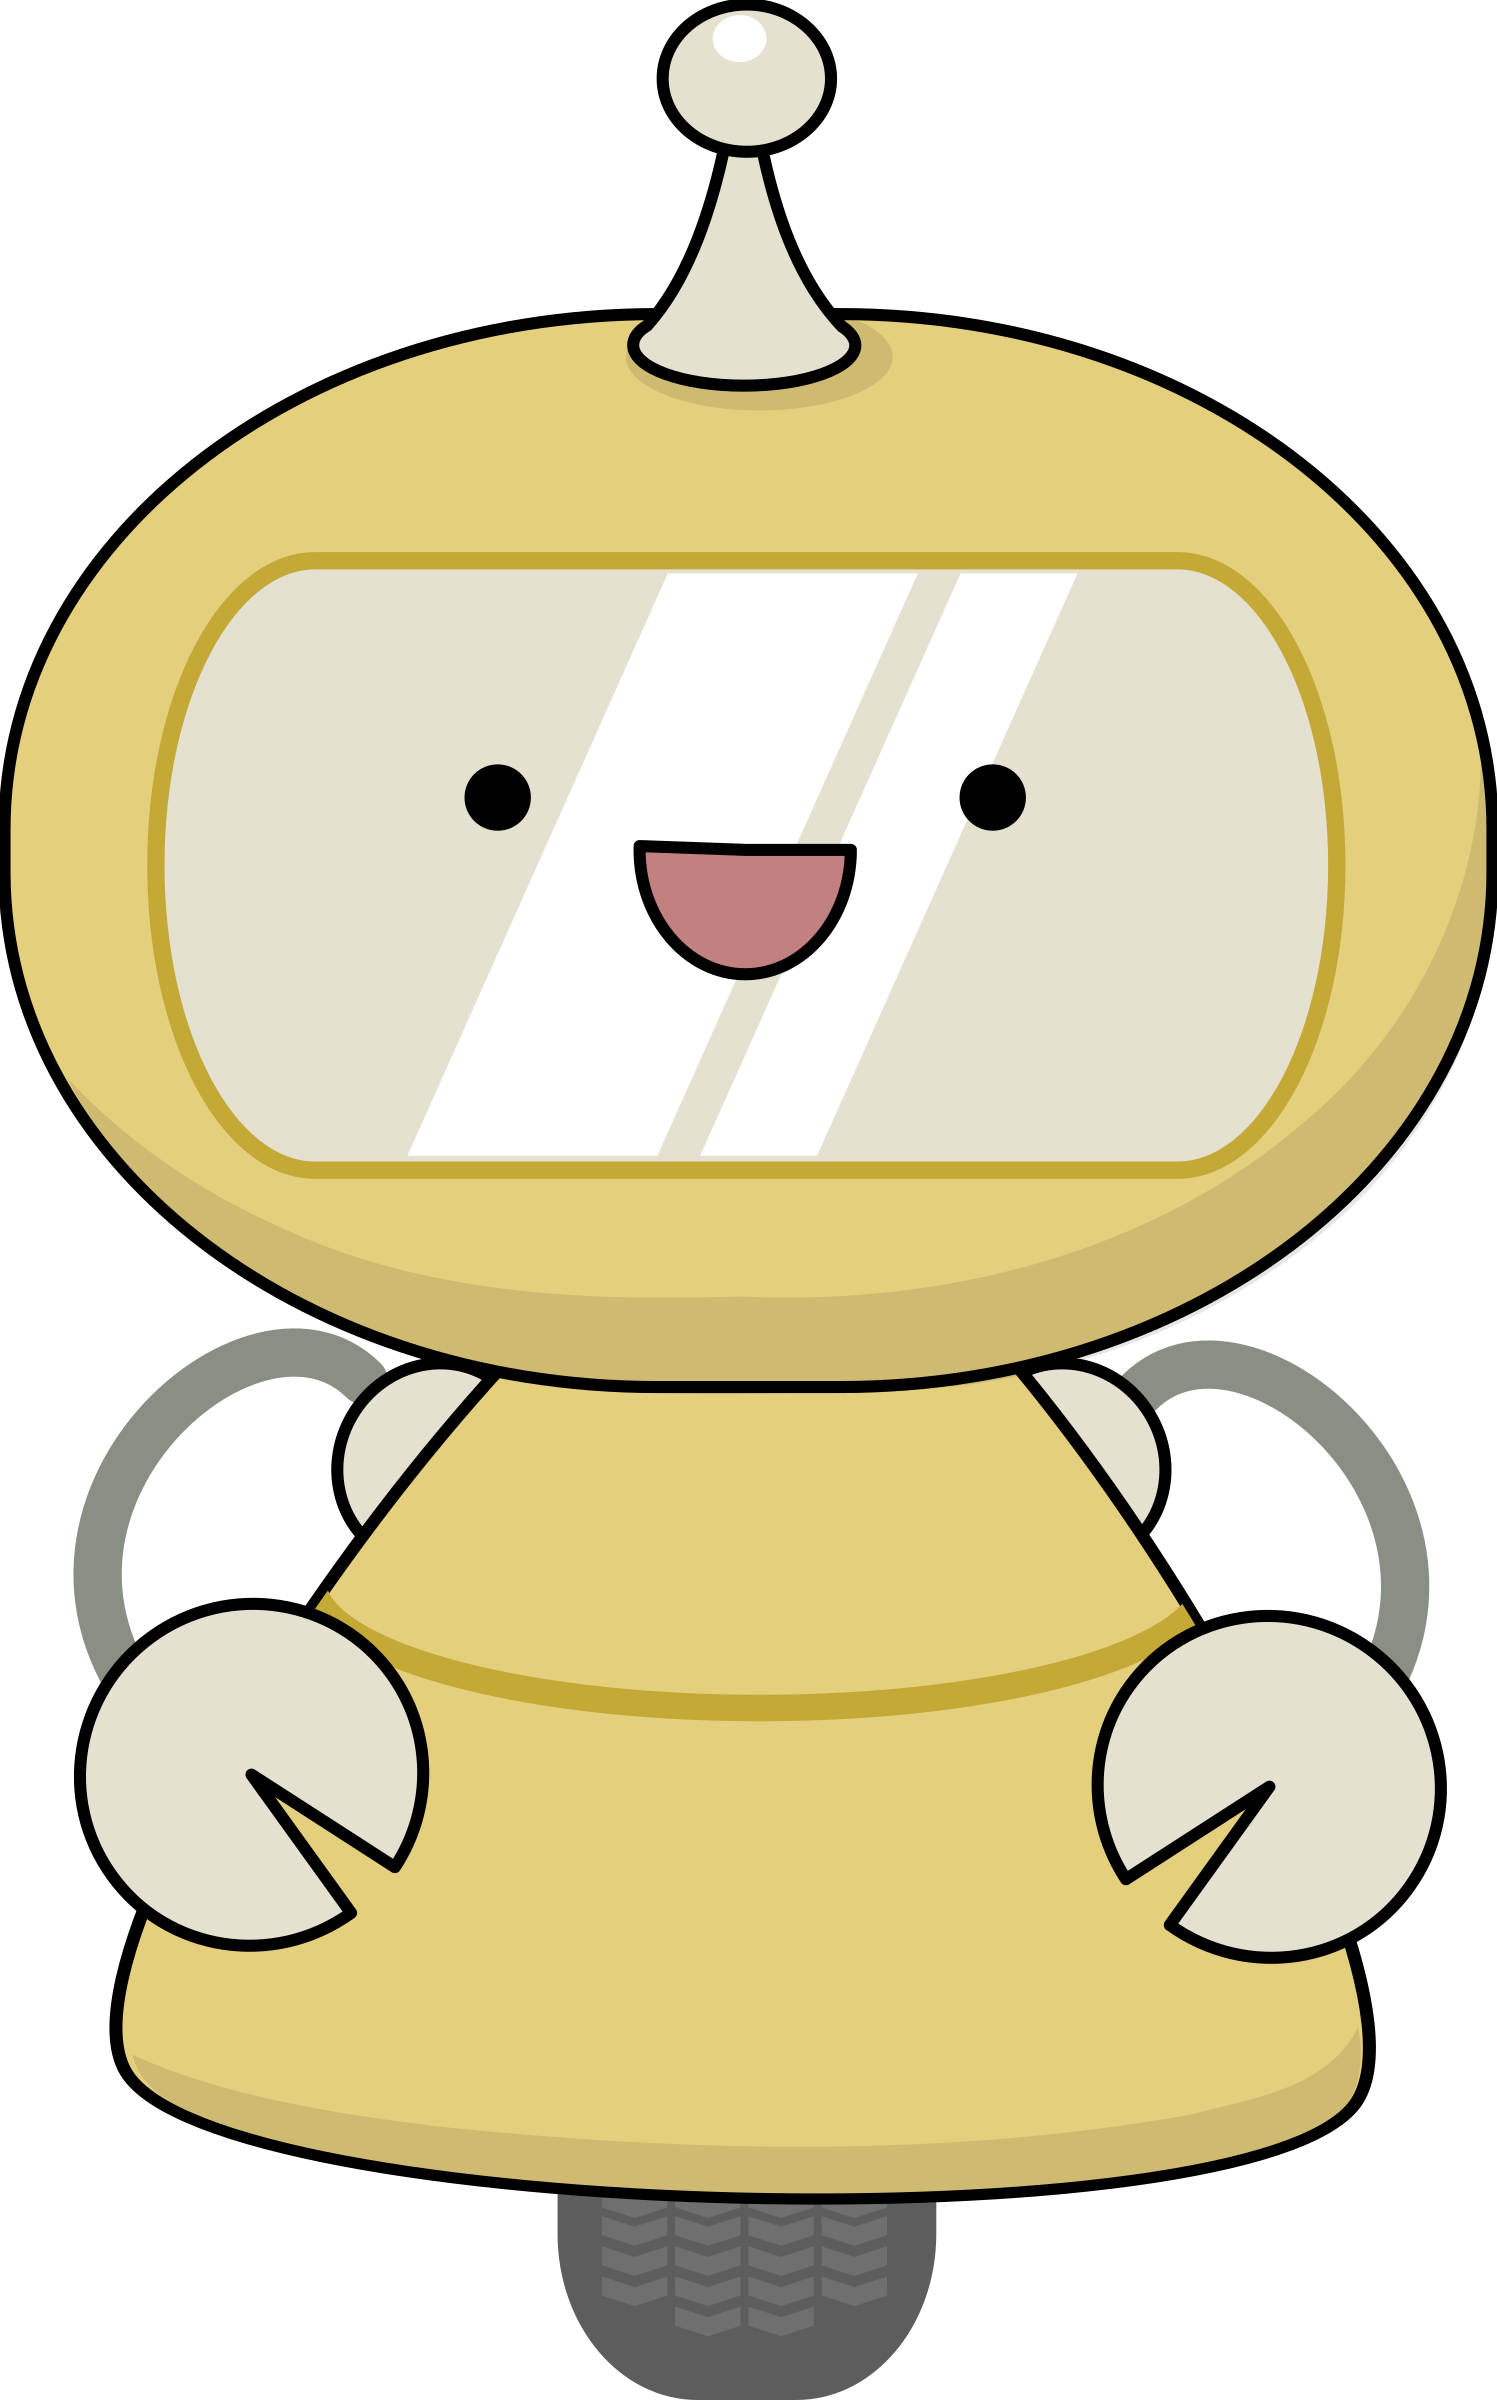 Big clipart friendly. Robot in yellow image